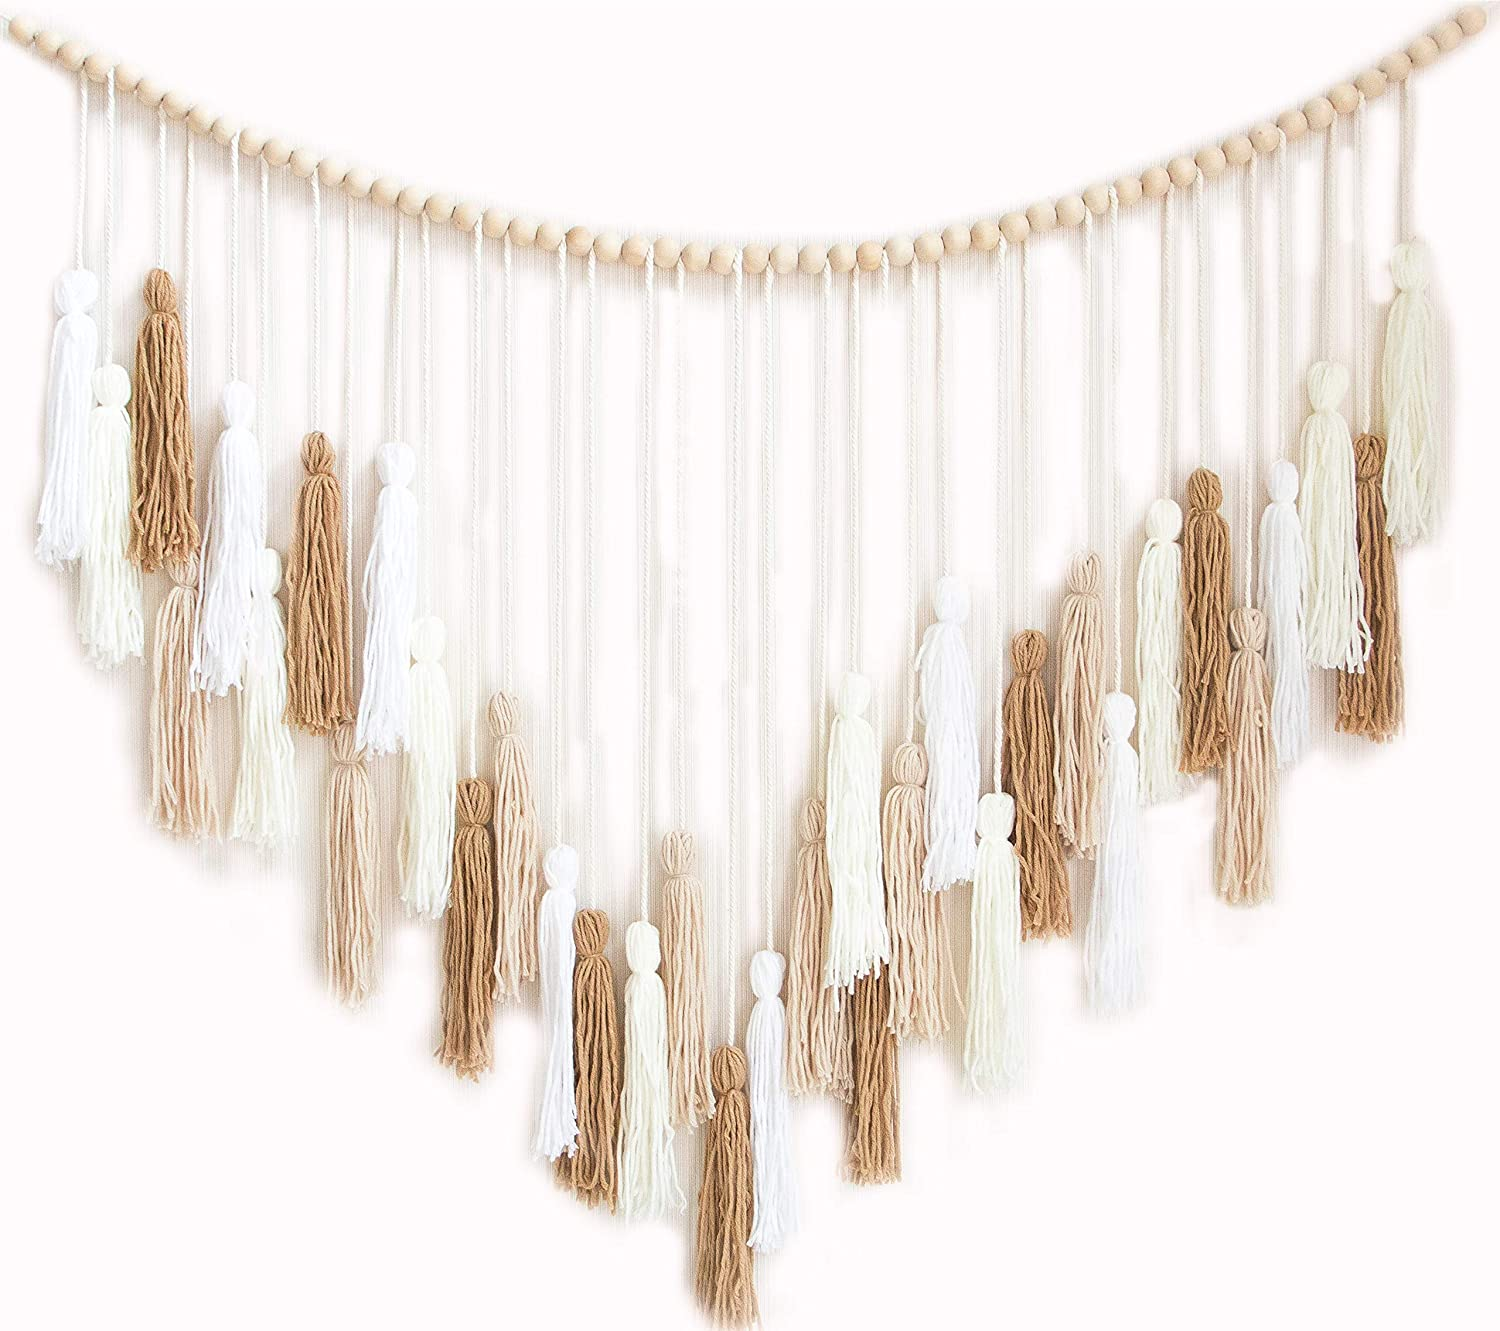 Decocove Macrame Wall Hanging - Large Macrame Wall Hanging with Wood Beads - Bohemian Wall Decor for Bedroom, Living Room and Kitchen - Cream and Beige - 35'' x 36''